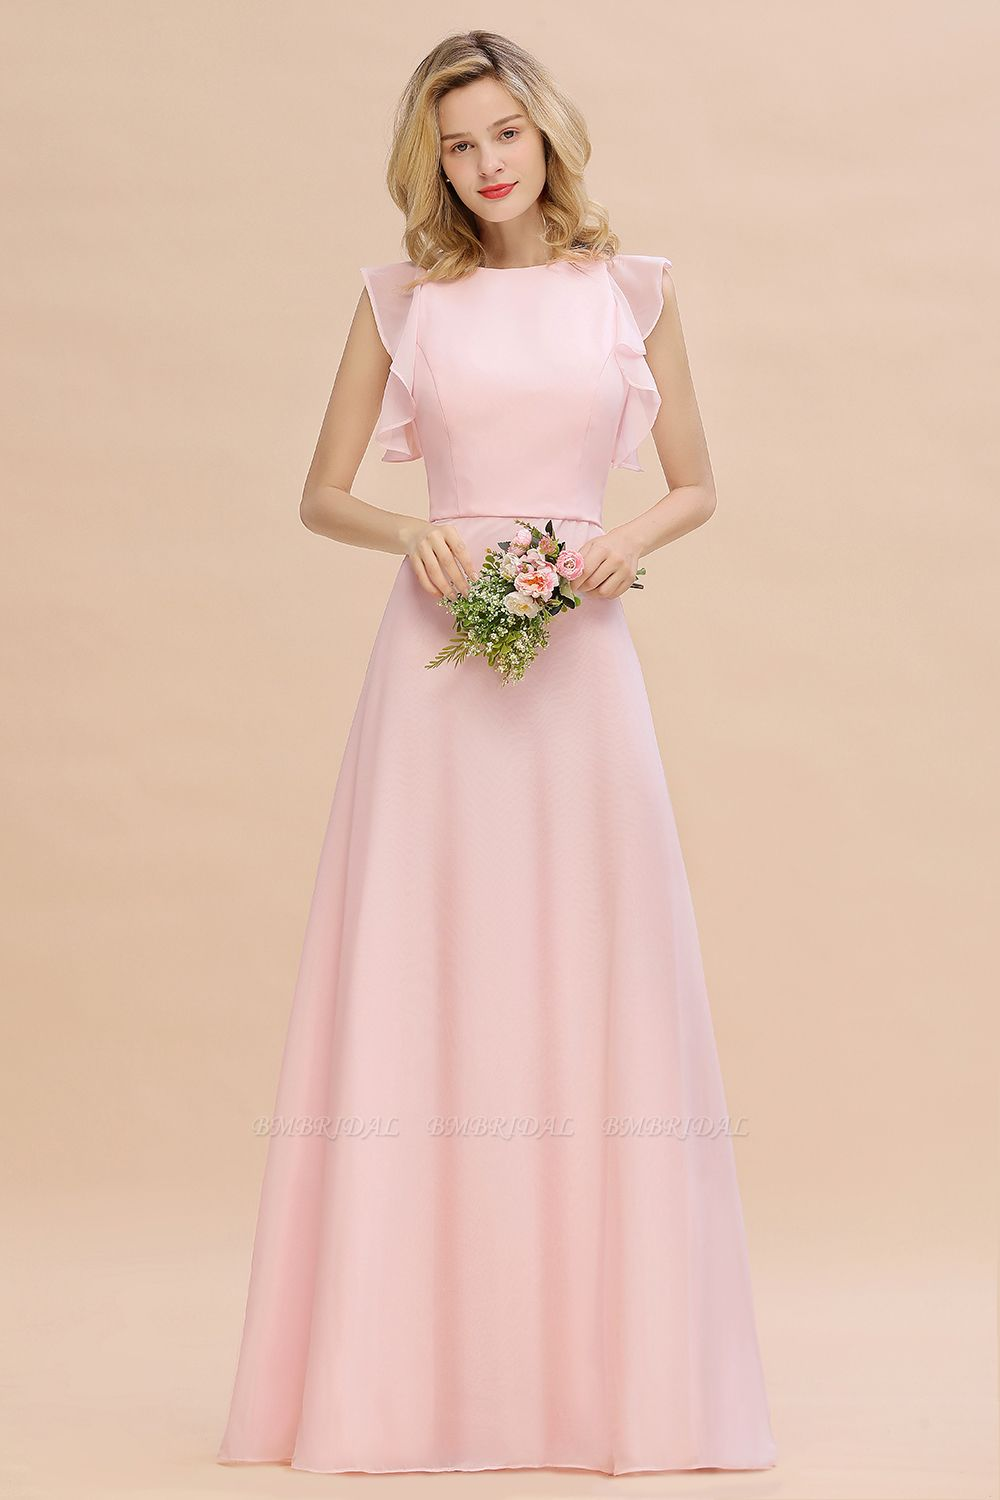 BMbridal Simple Jewel Draped Sleeves Blushing Pink Bridesmaid Dress Online